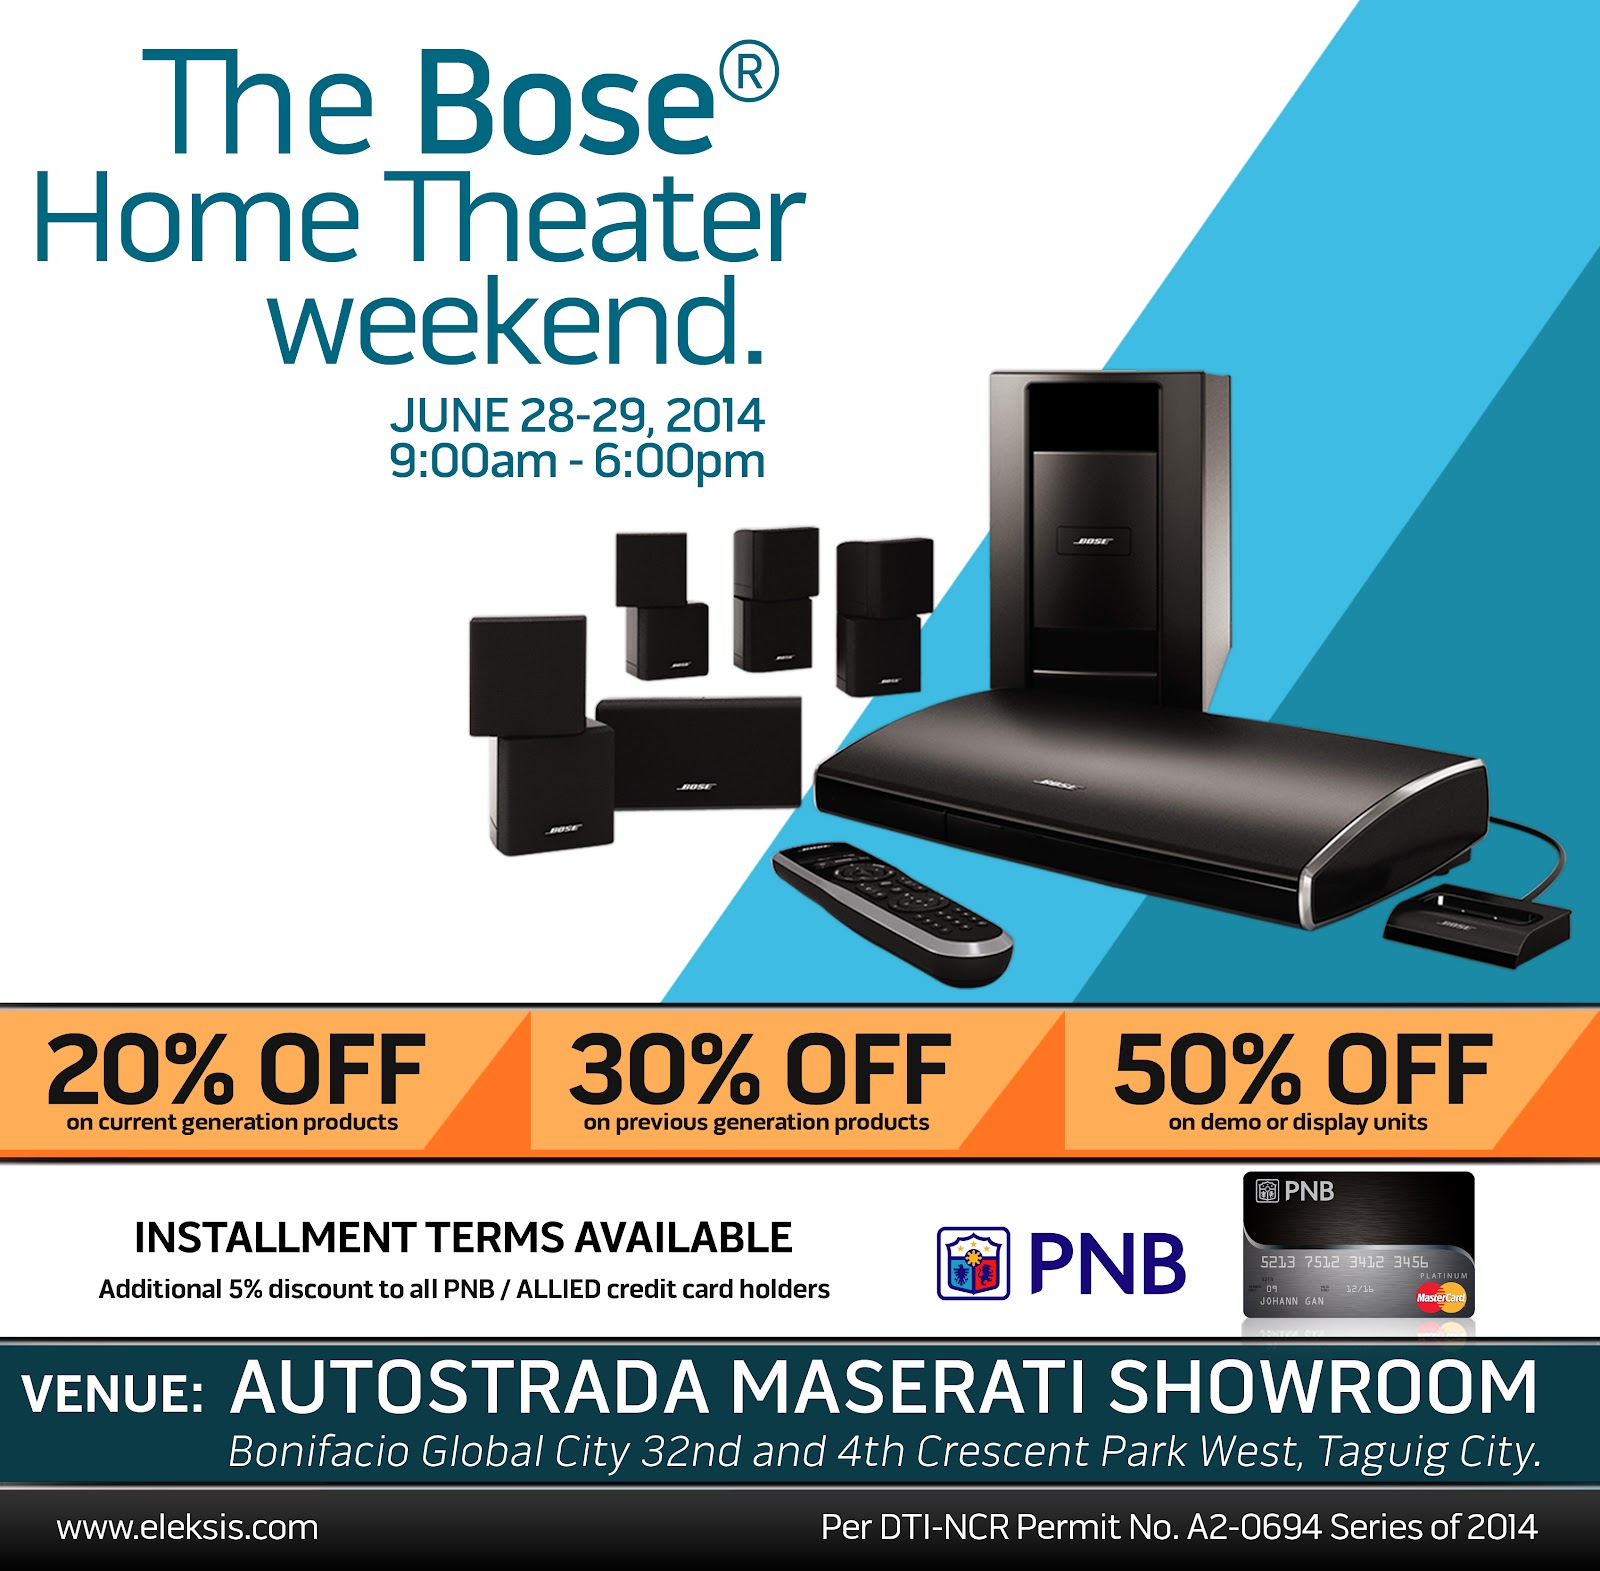 bose home theater weekend sale benteuno com. Black Bedroom Furniture Sets. Home Design Ideas